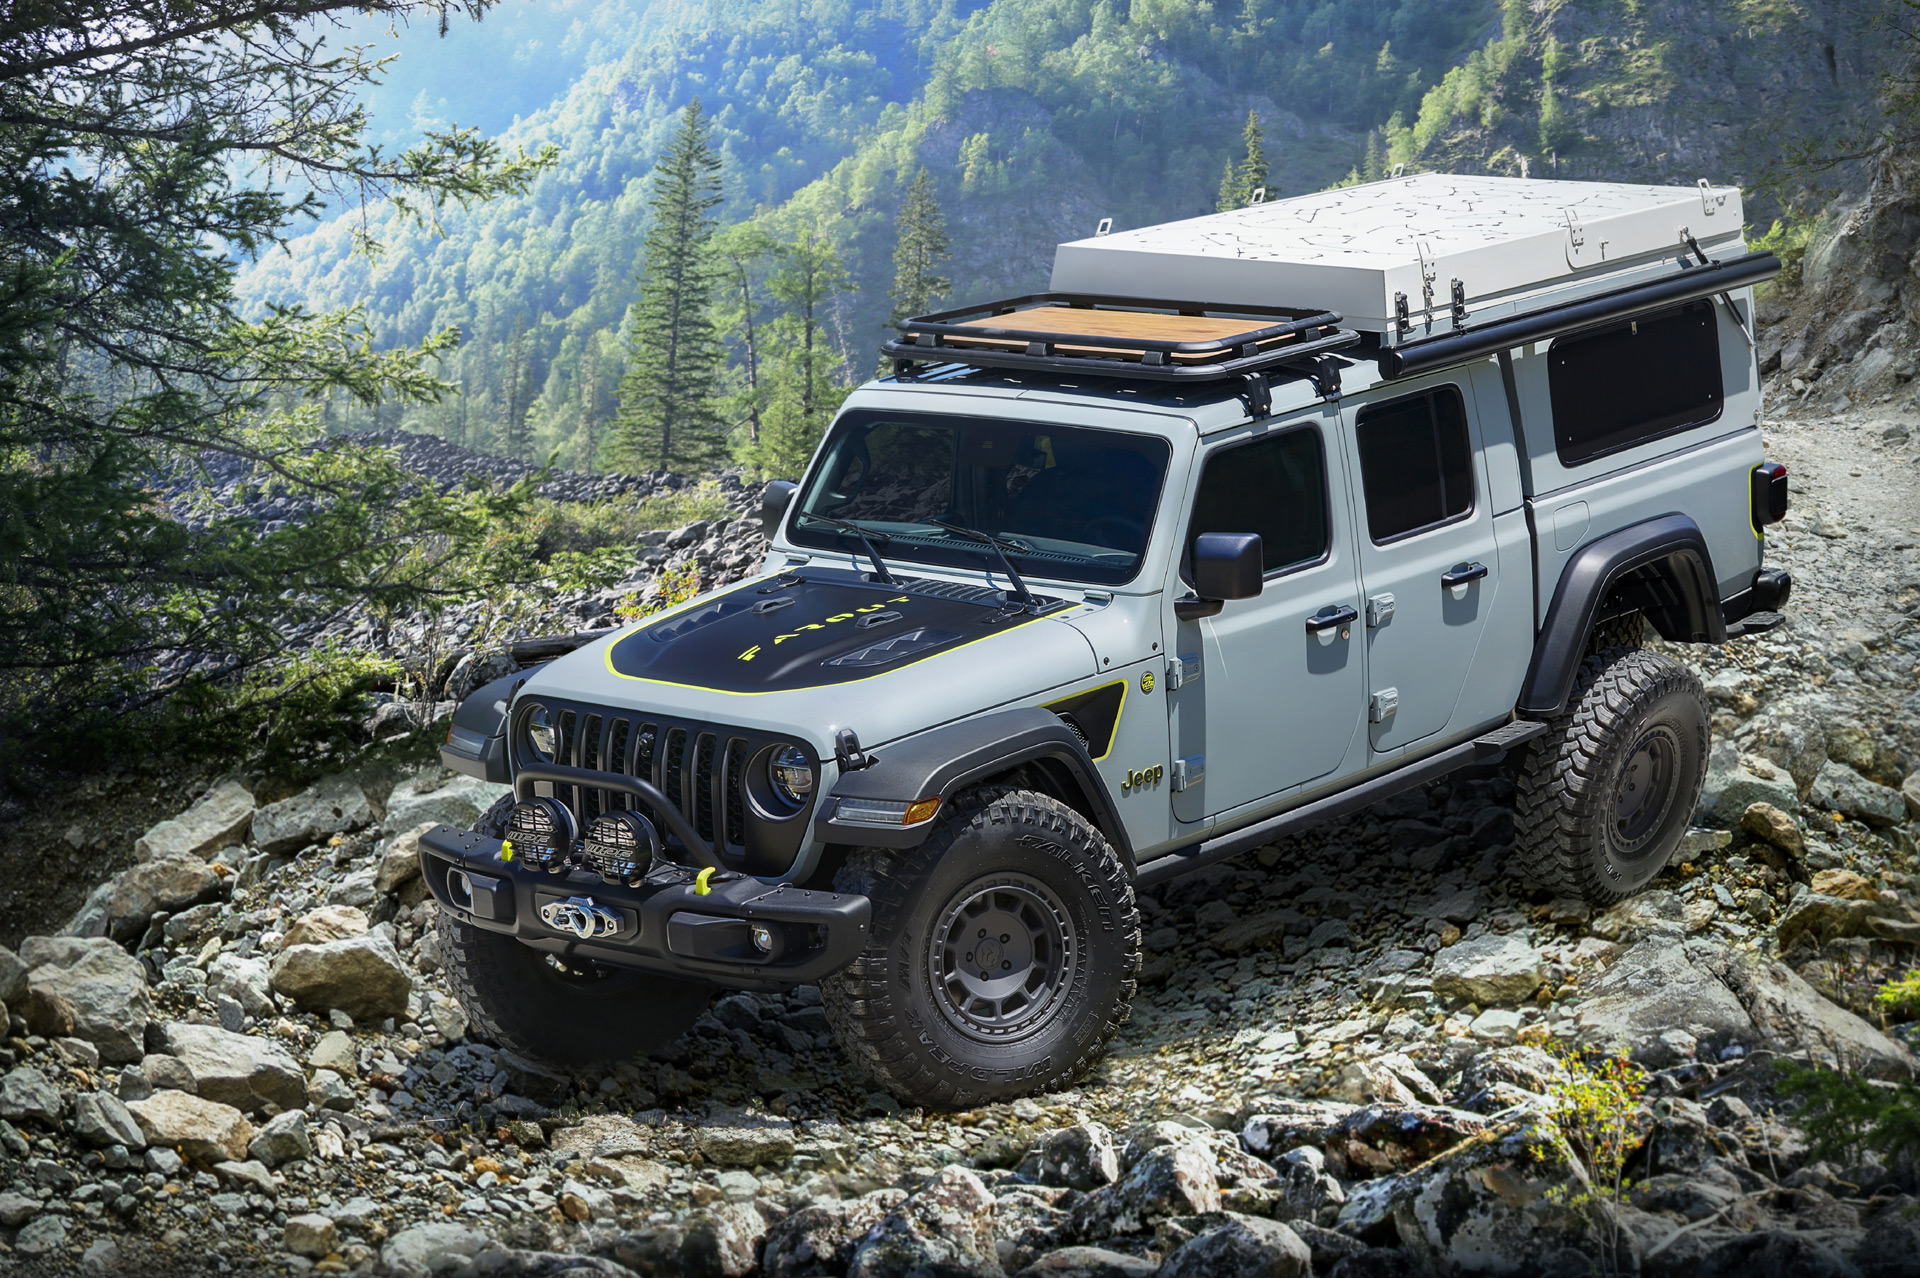 Jeep explores overlanding with Gladiator Farout concept